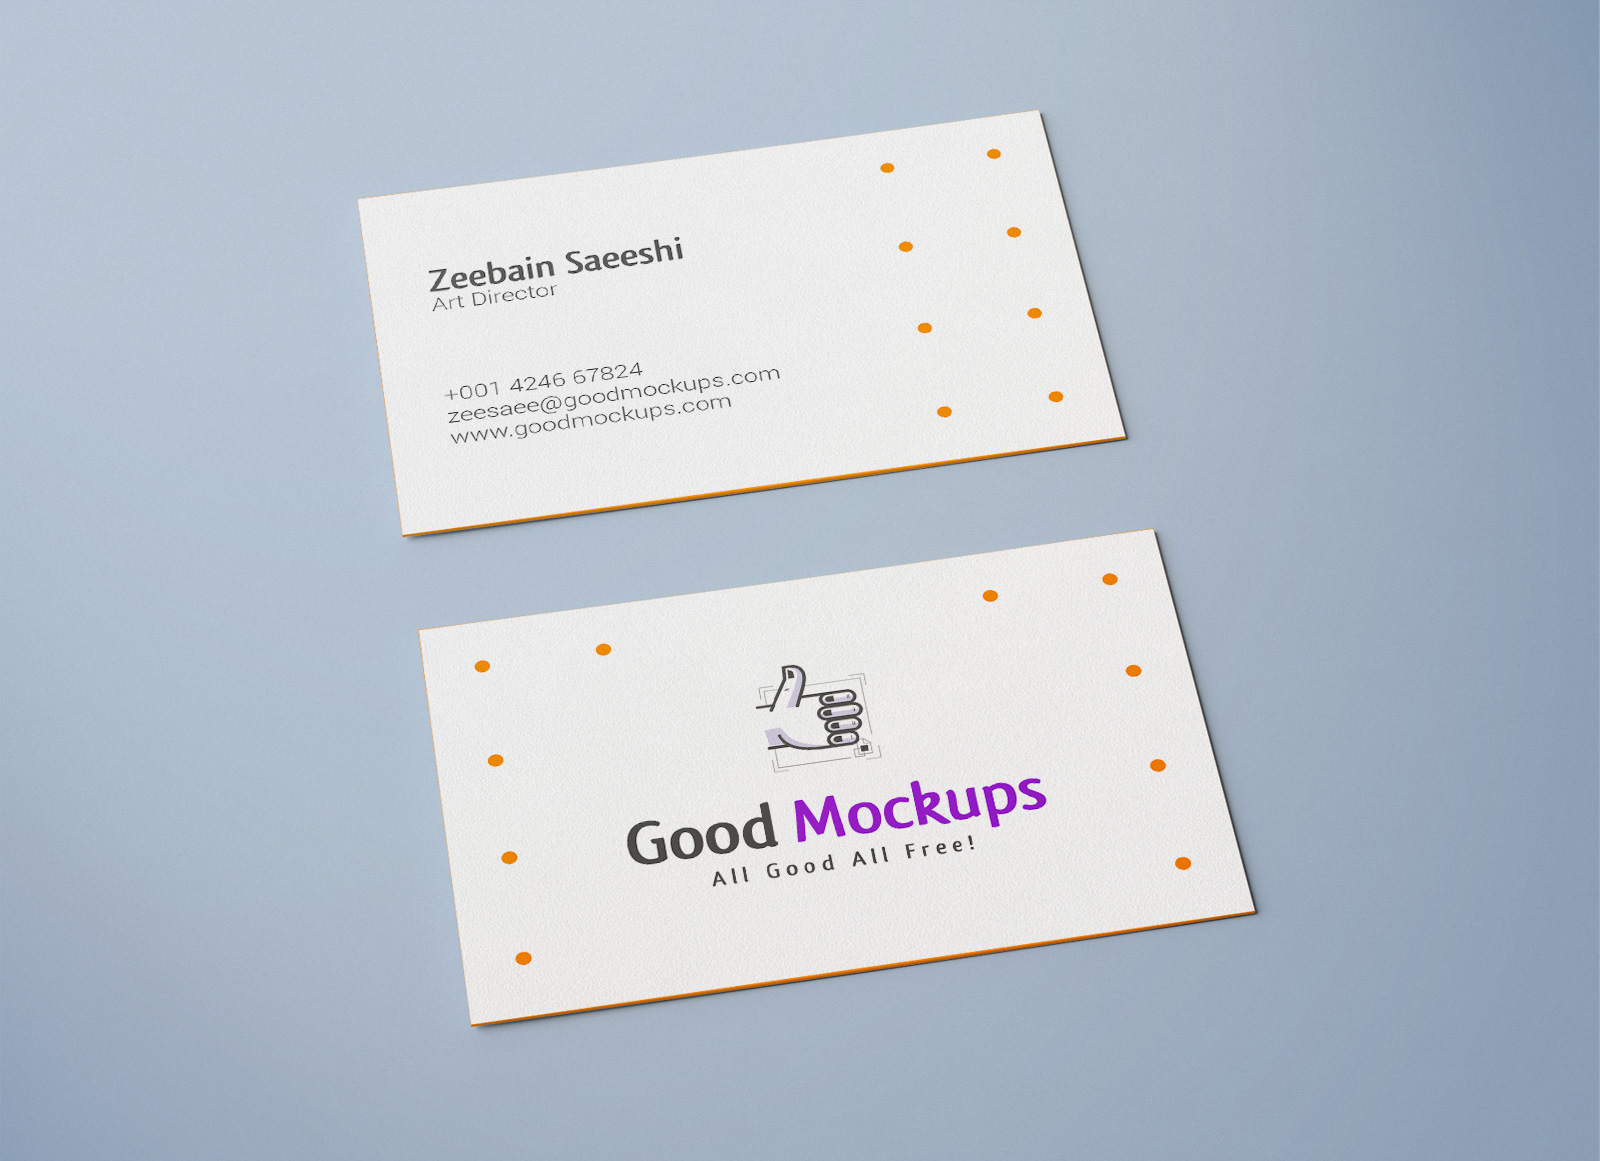 Free double sided business card mockup psd good mockups free business card mockup psd flashek Images